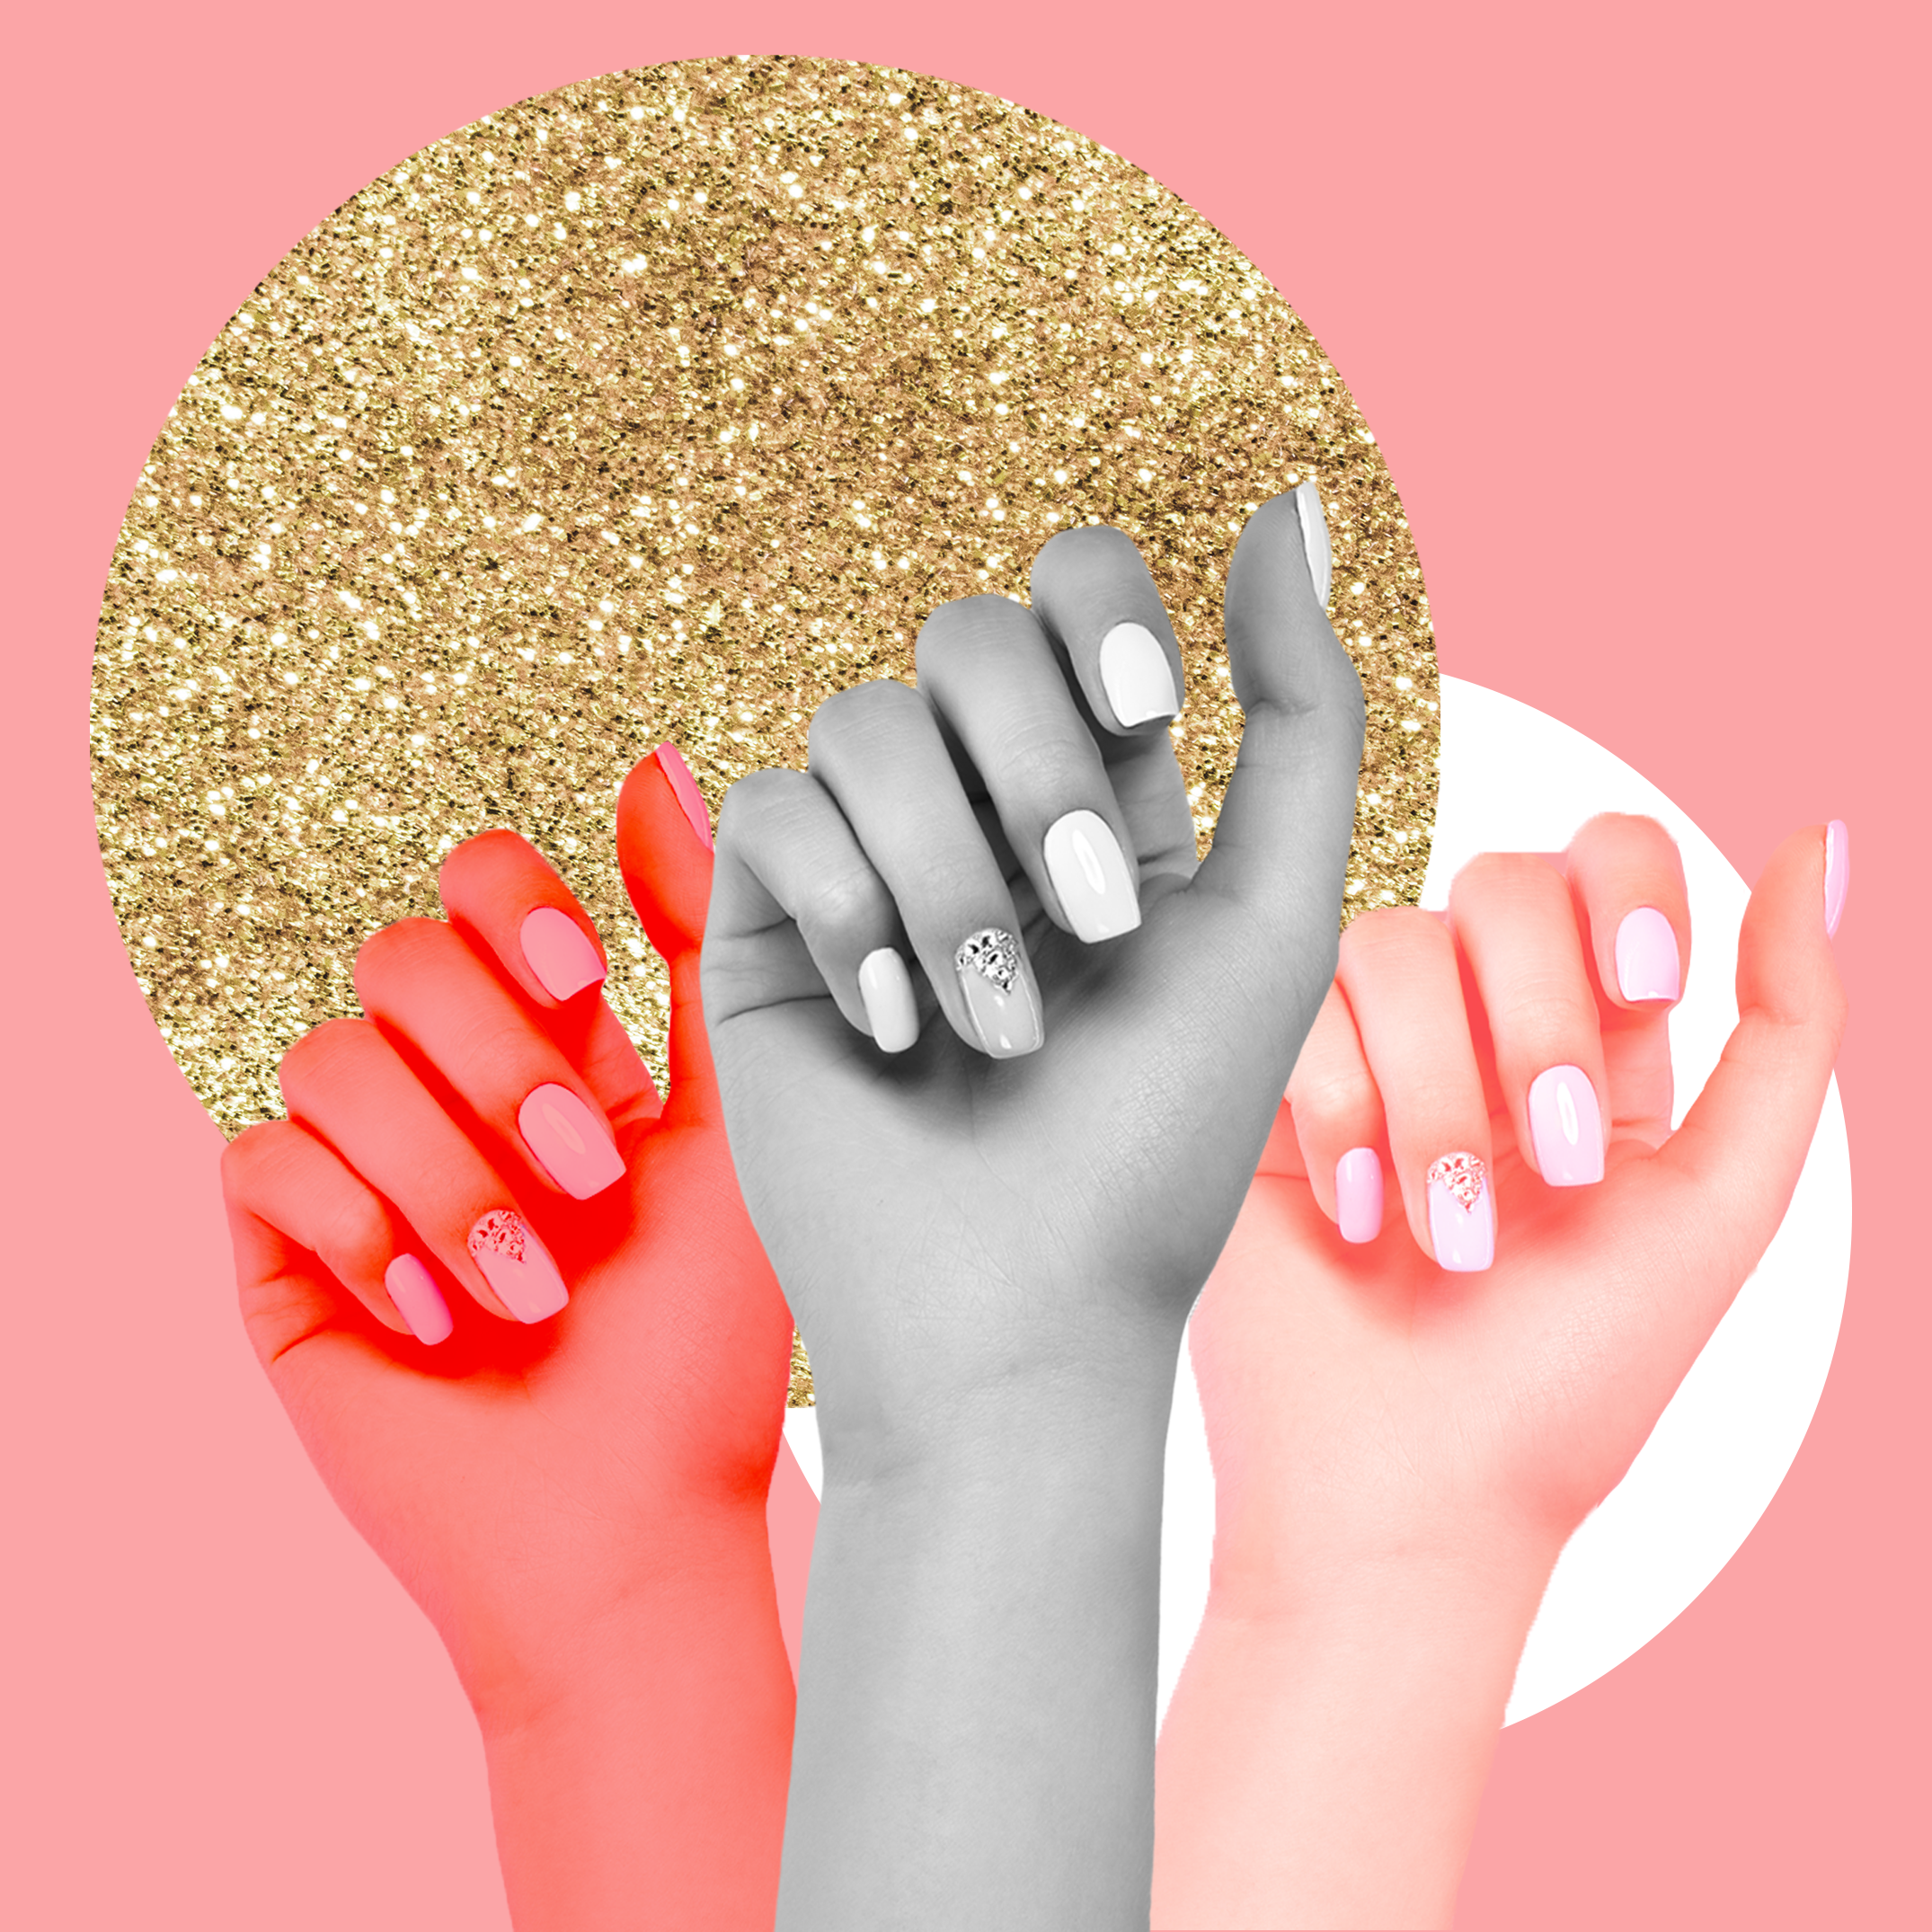 How Long Do Gel Nails Last: An Expert Weighs In